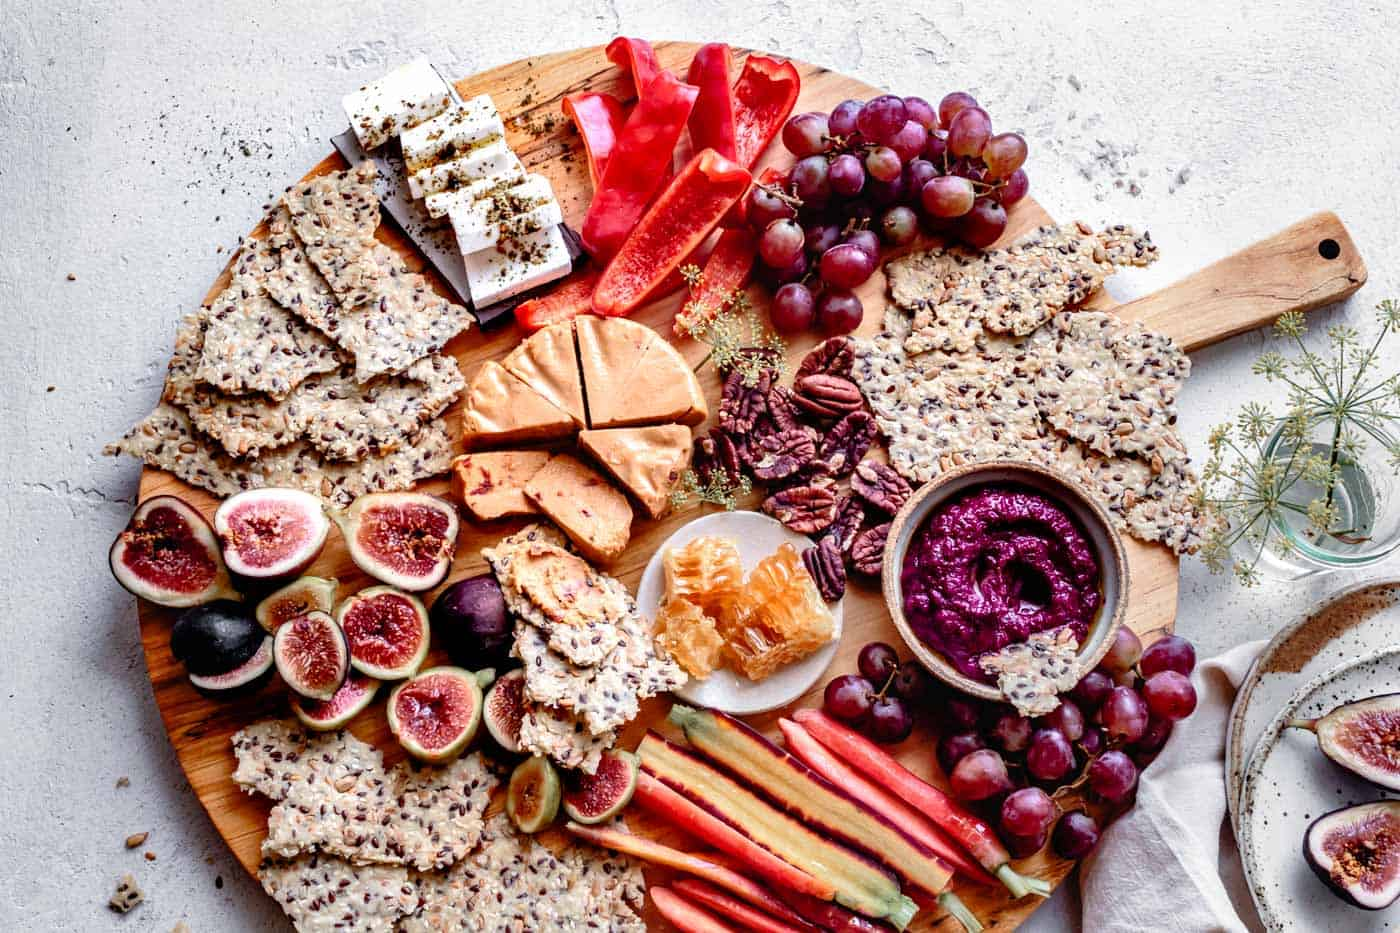 paleo cheeseboard with gluten-free crackers